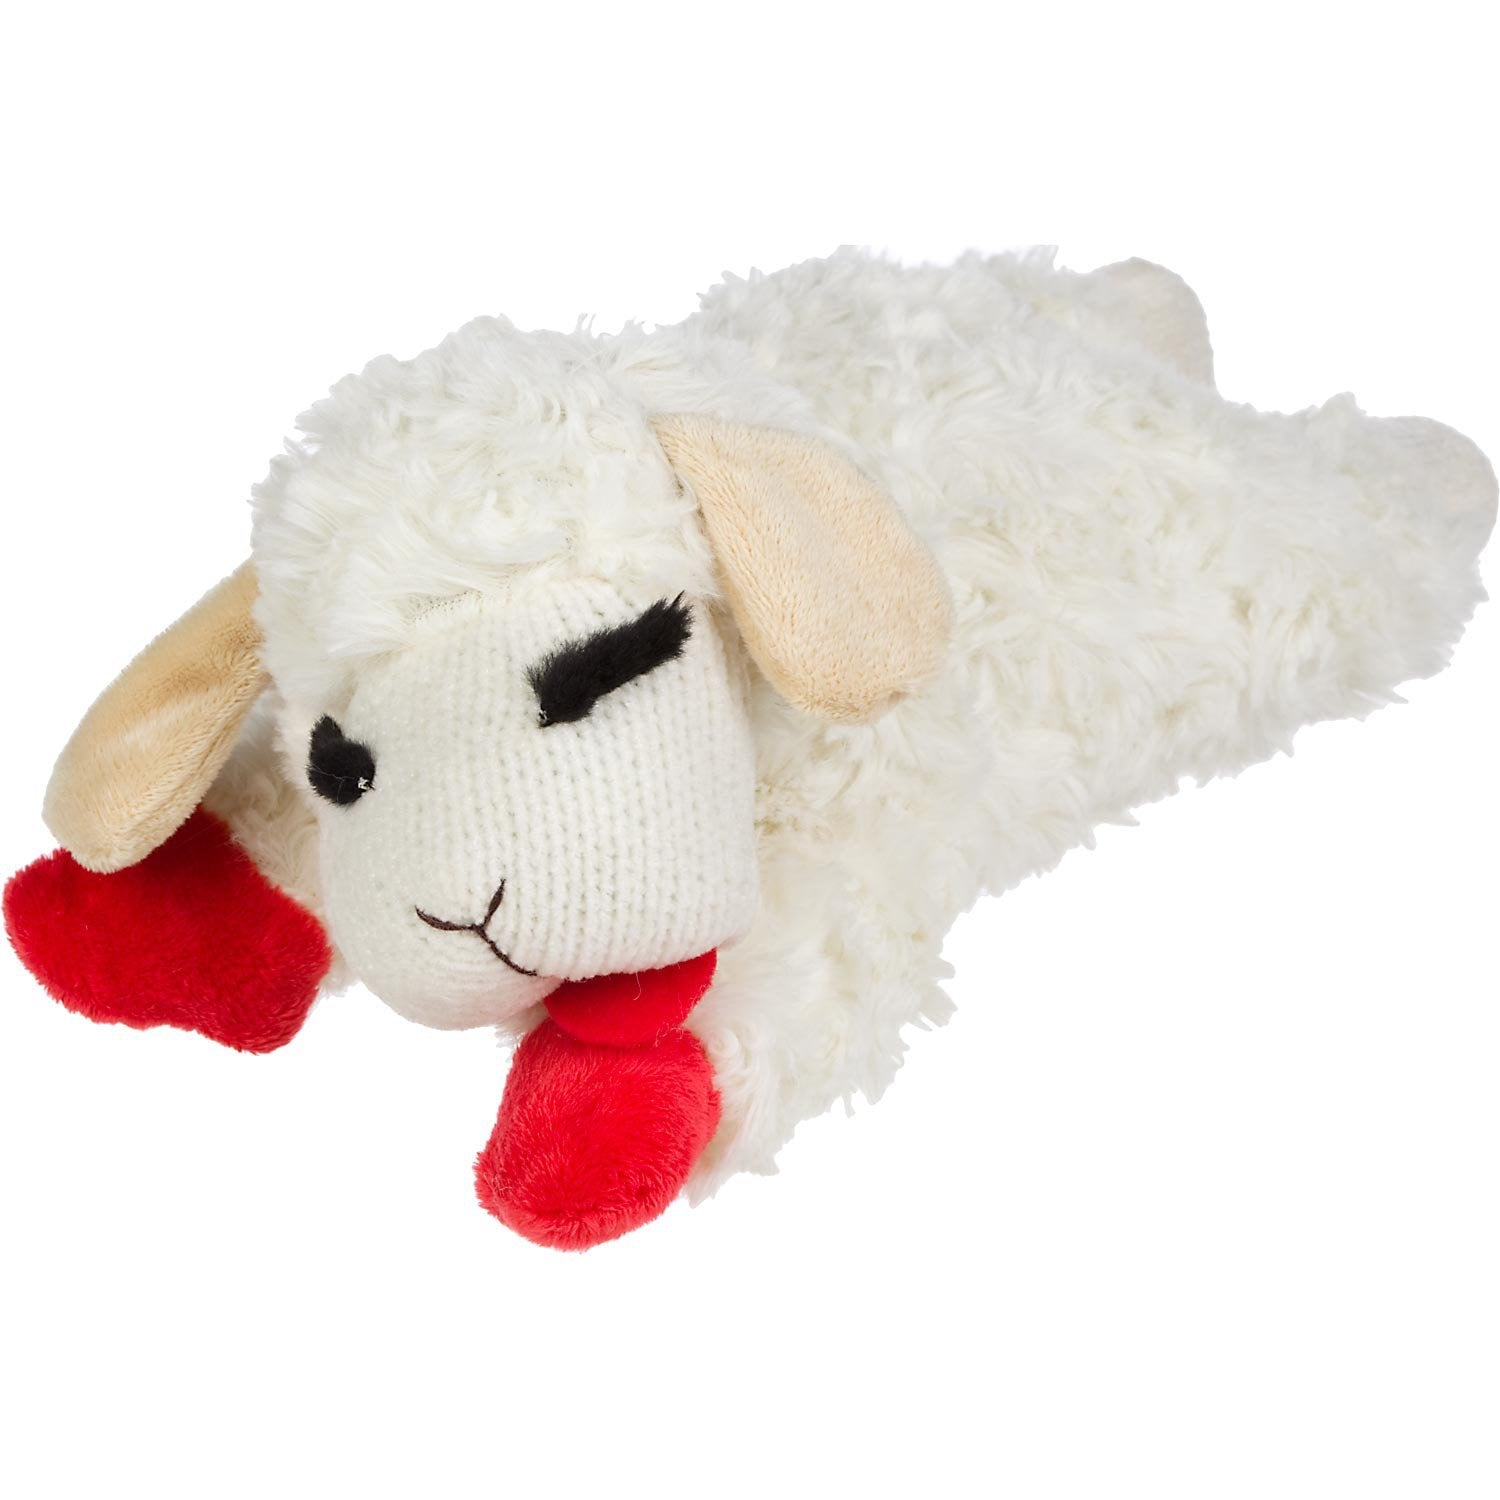 Dog Toy Lamb Chop Squeaker Toy 3 Sizes – Canine Styles